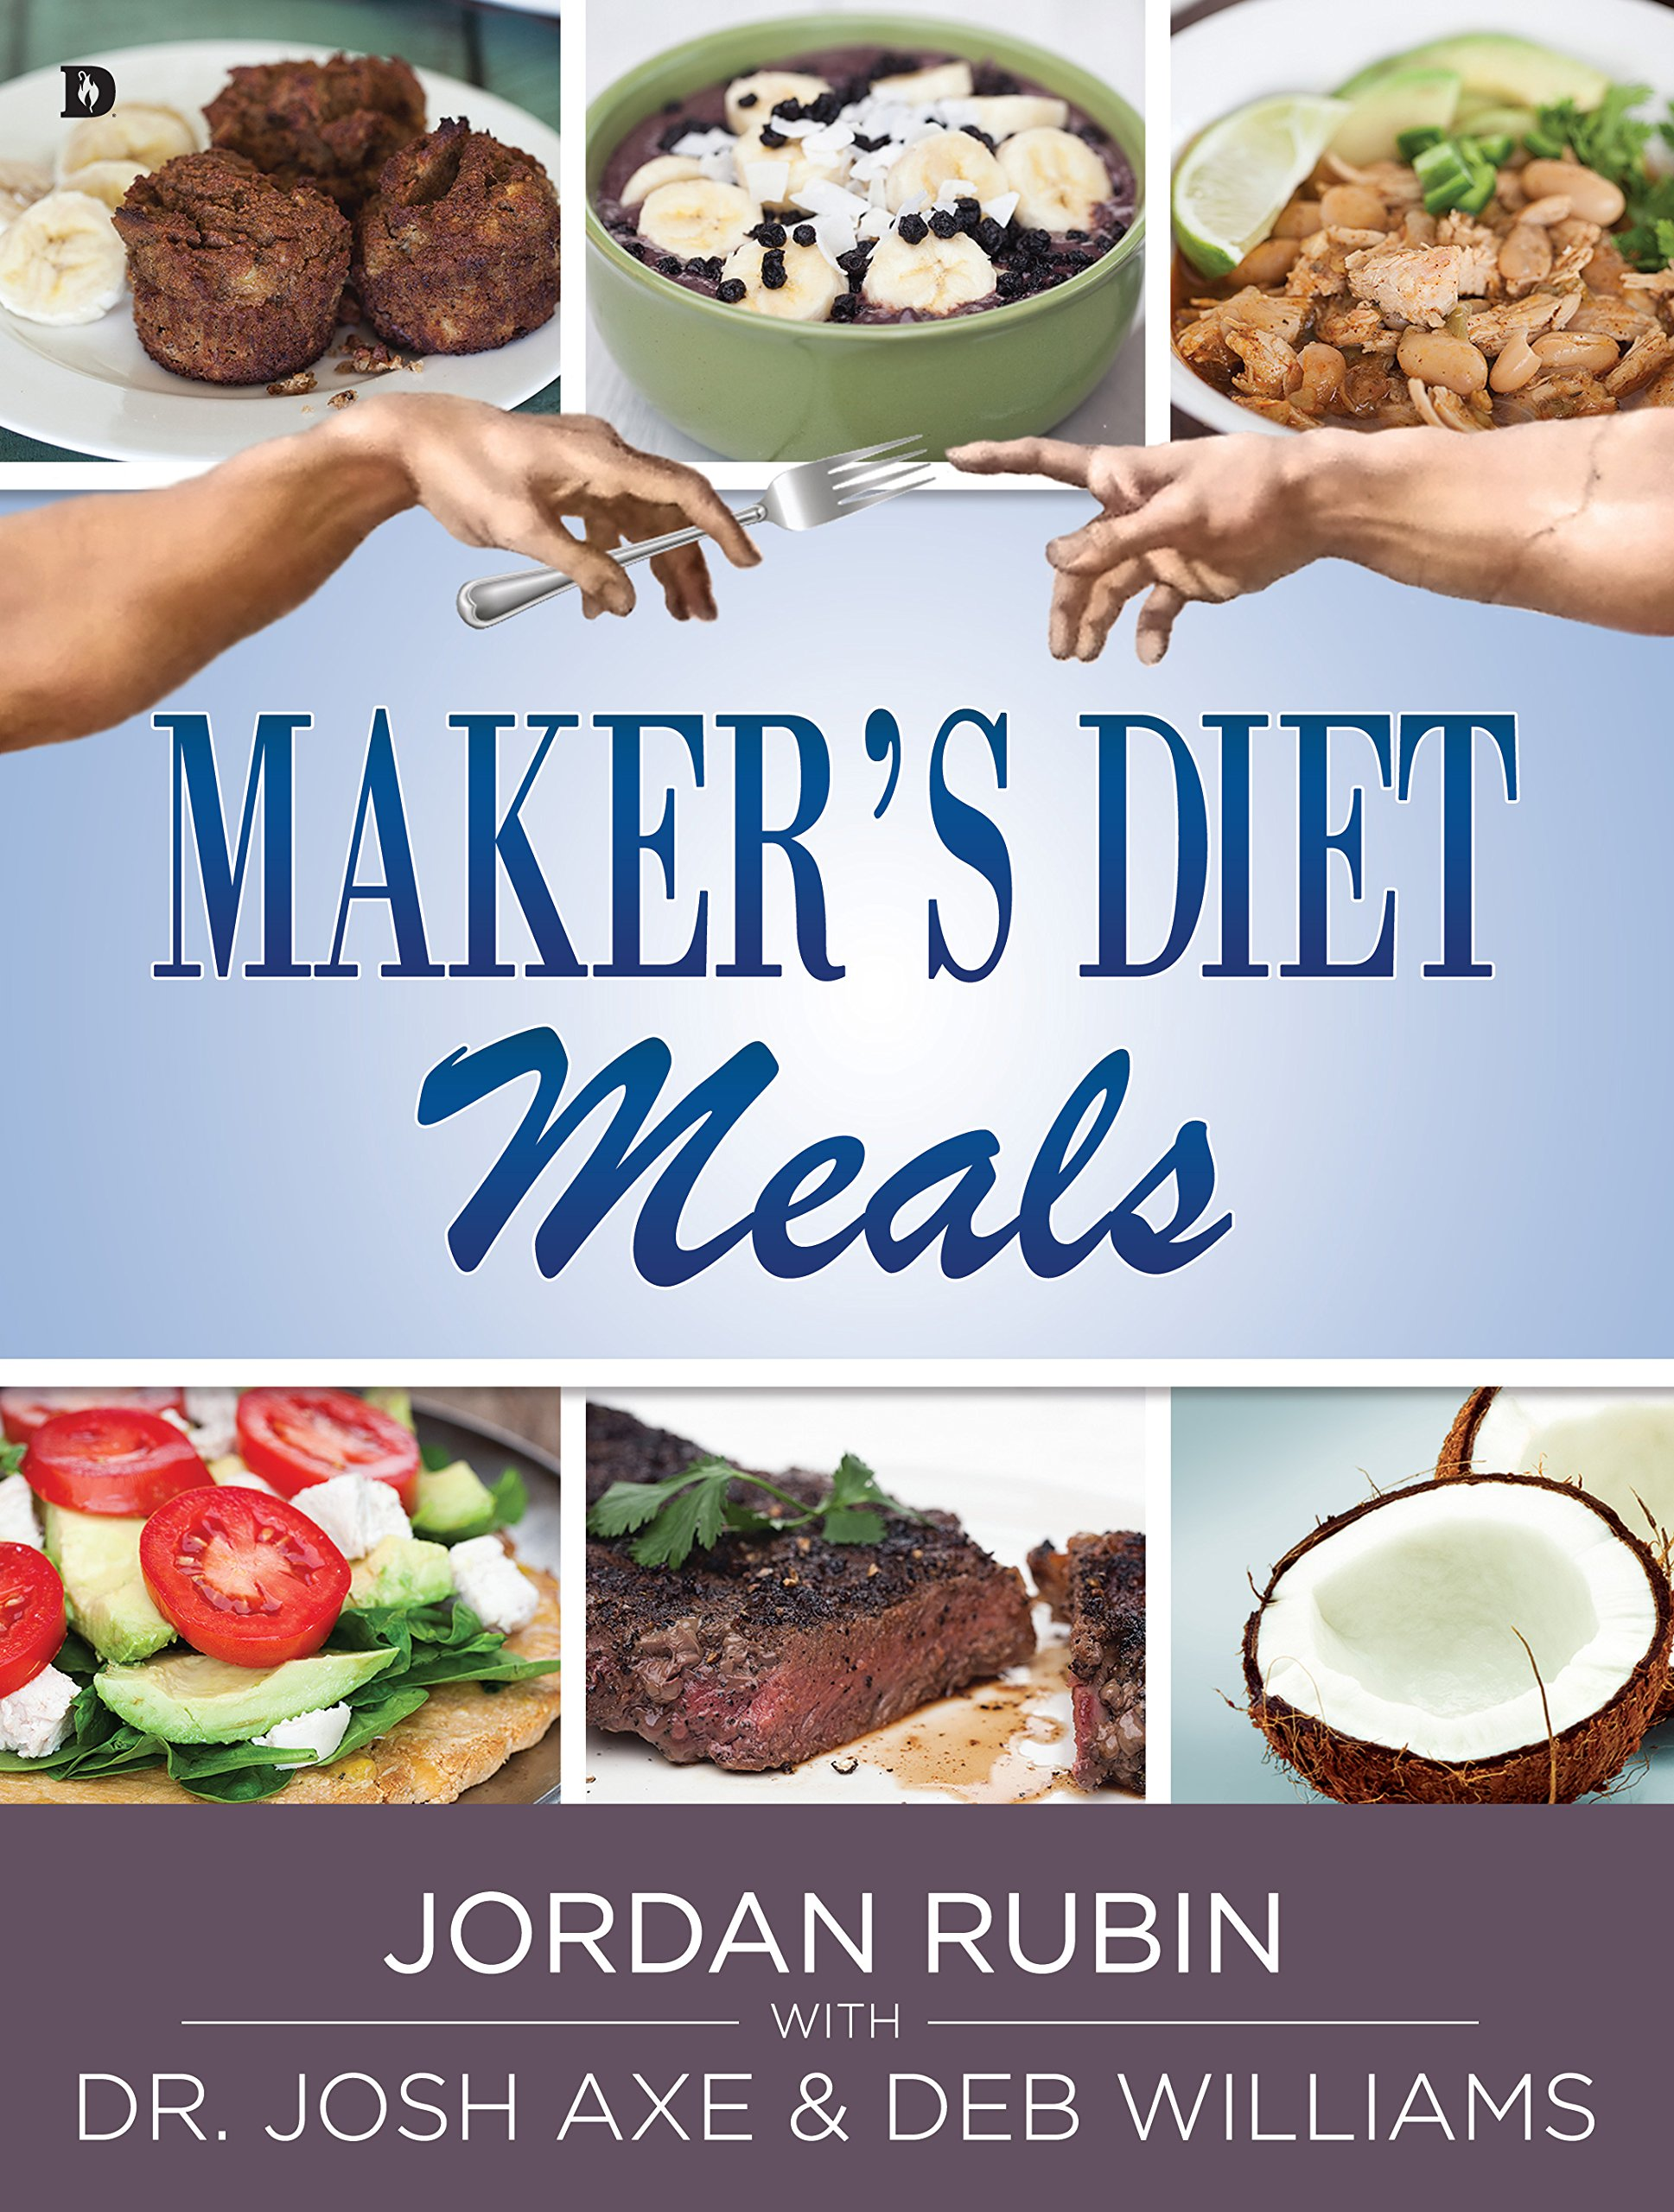 recipes for makers diet